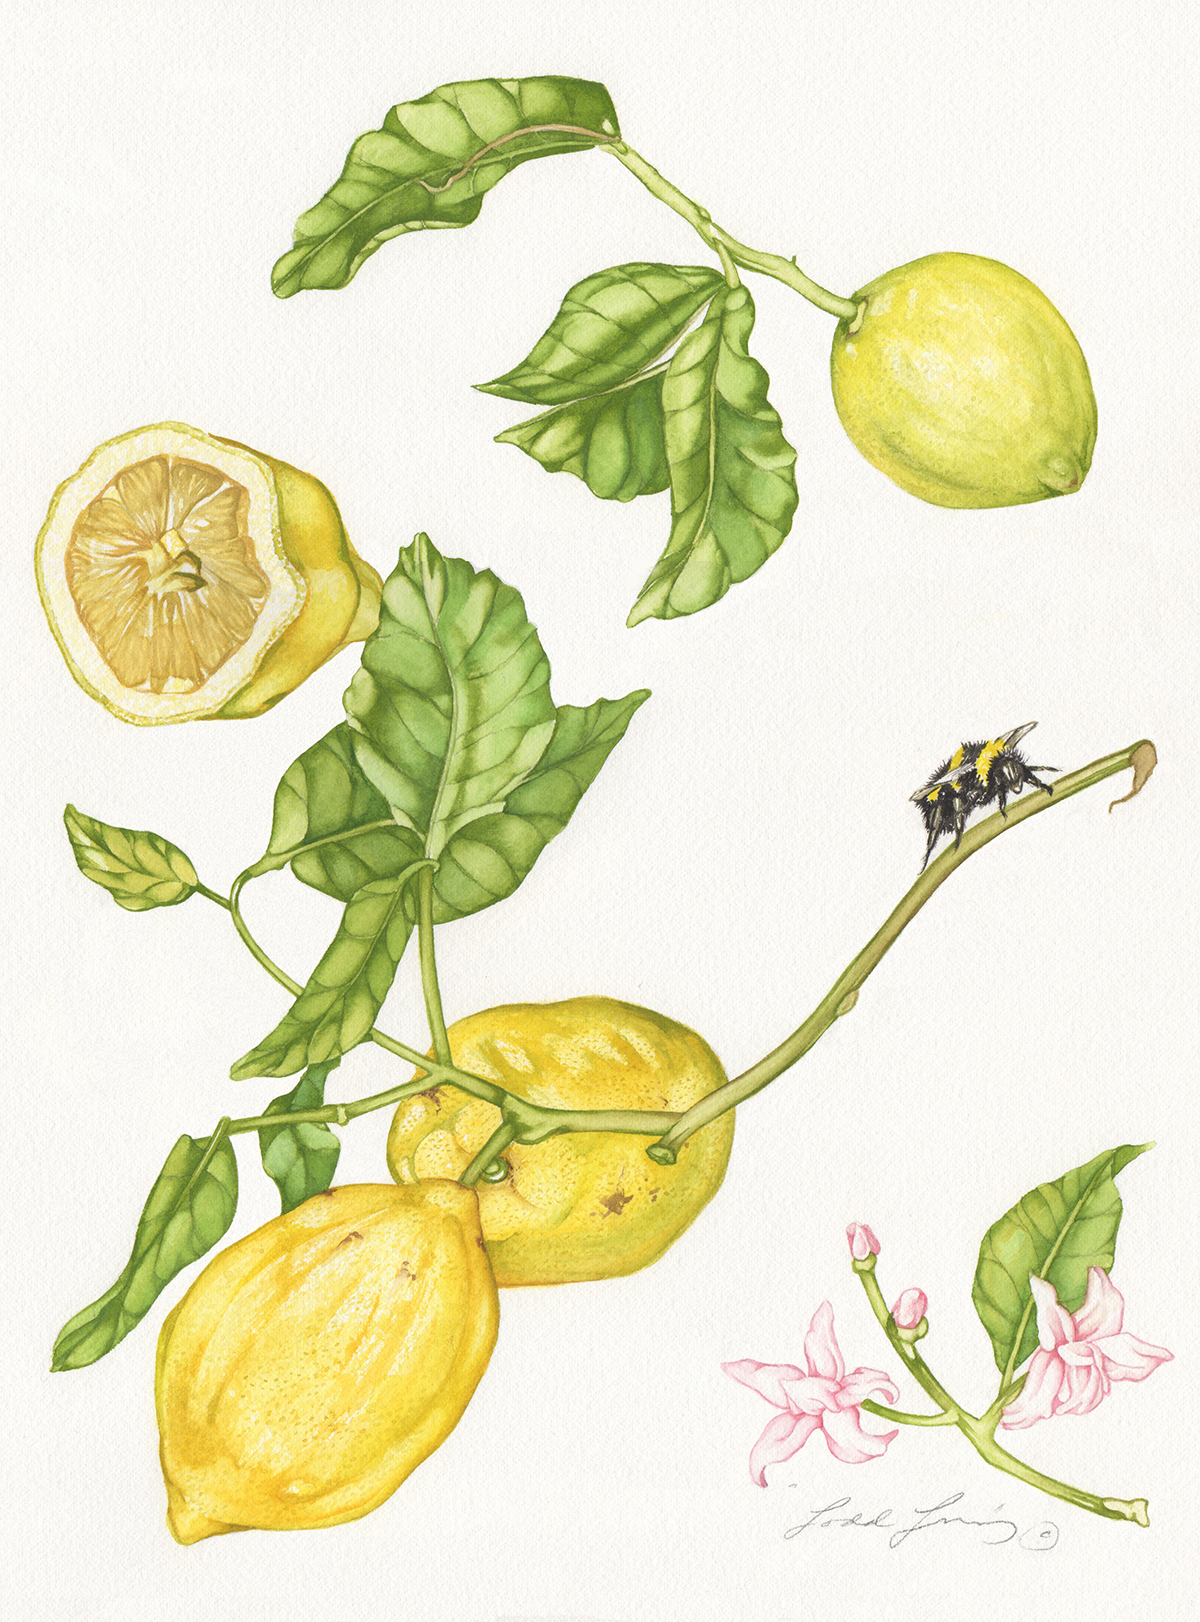 Lemons with Bumble Bee